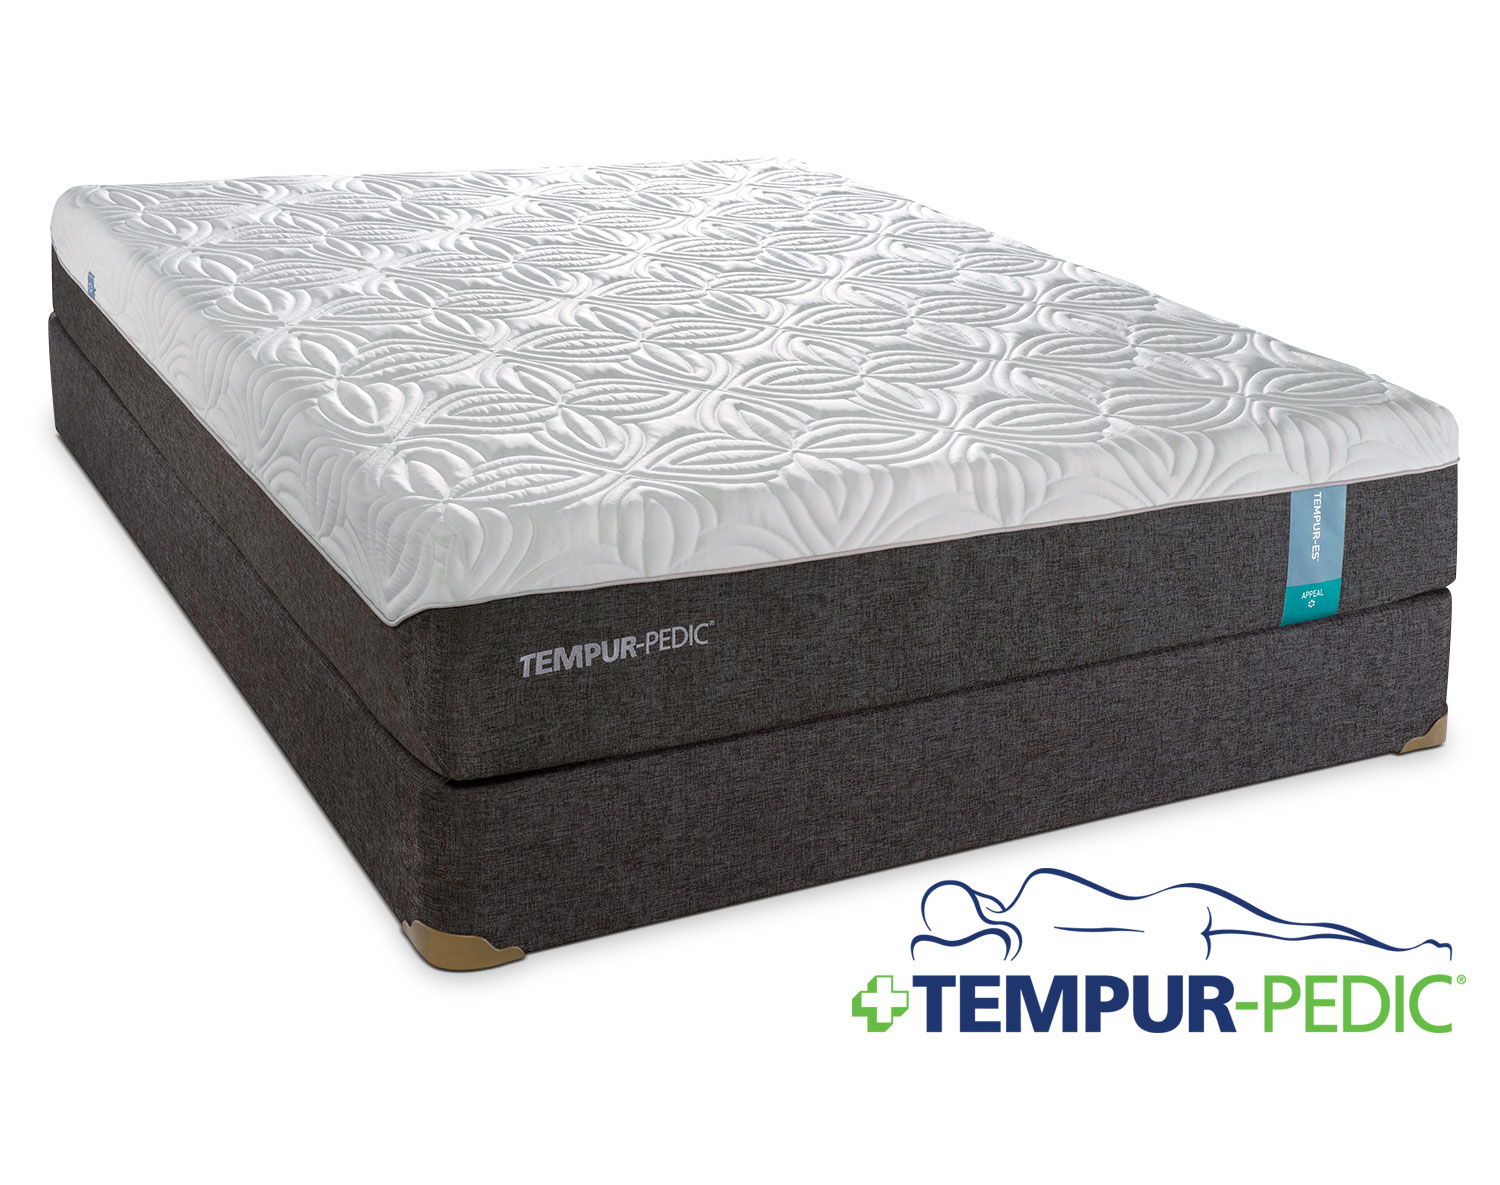 The Tempur-Pedic Appeal Collection